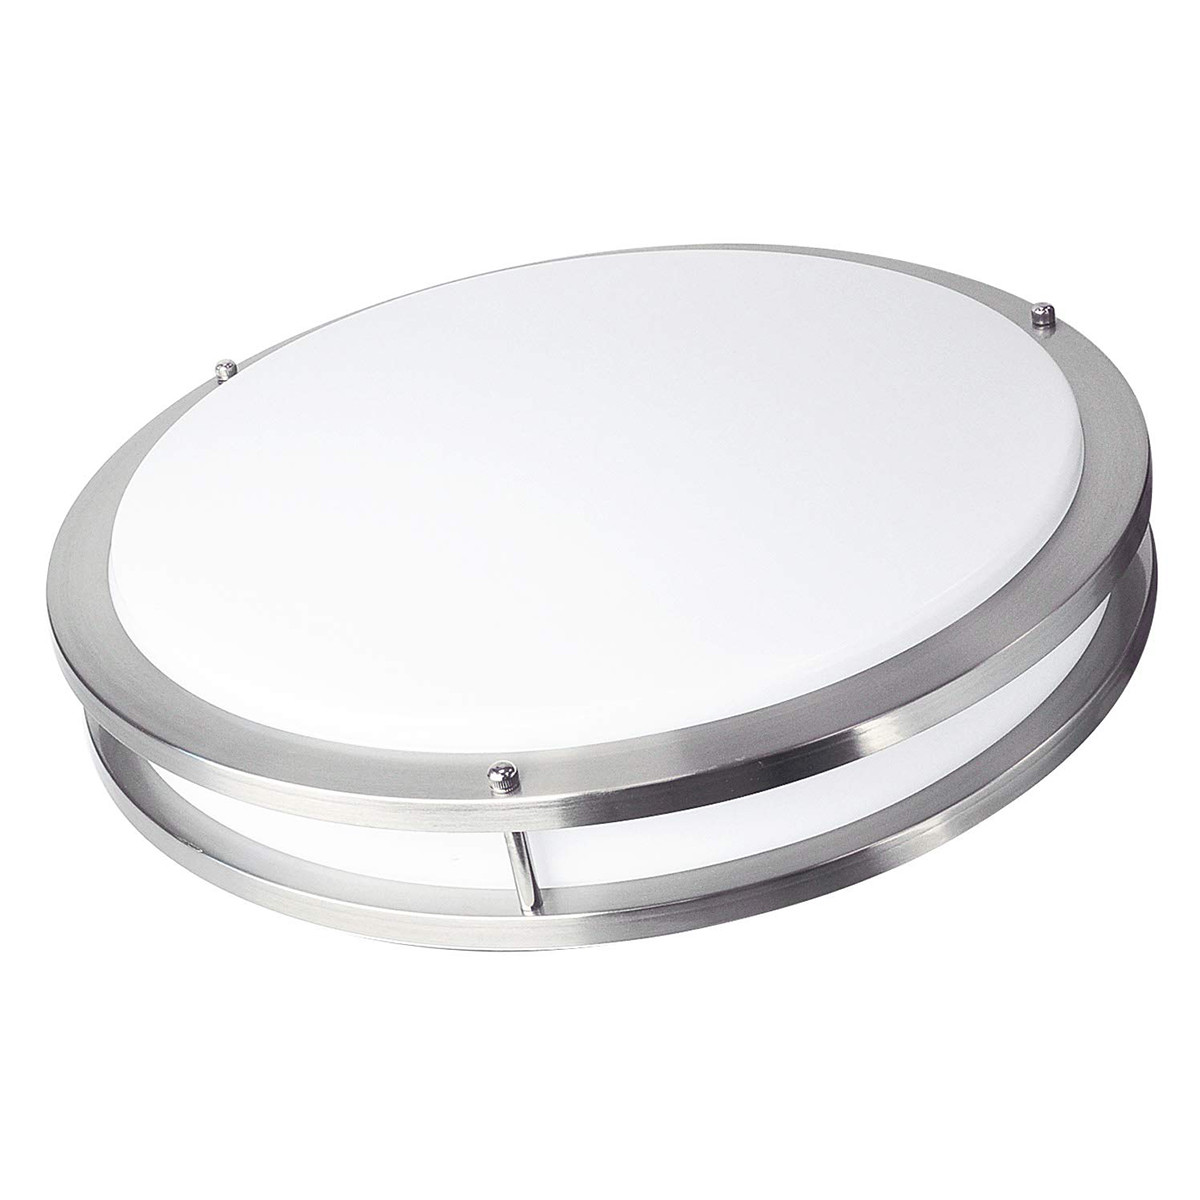 18W 13.97inch 80Lm/W ,Flush Mount, Round Nickel Finish with Acrylic shade and Triple CCTS Changeable  LED Ceiling Light Fixture for Home Lighting